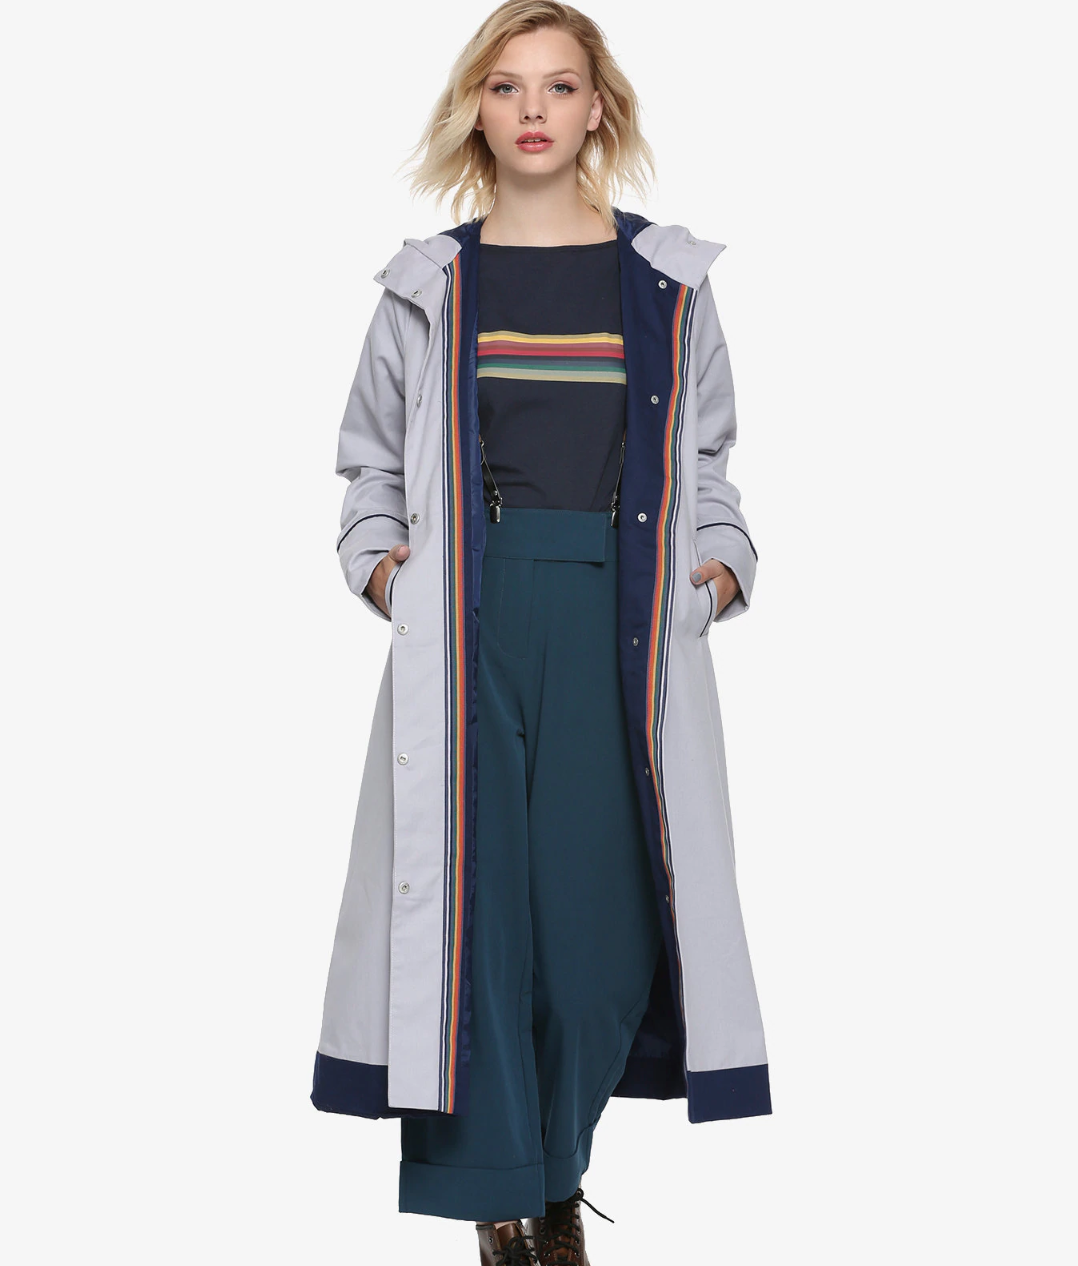 Cosplay as the Thirteenth Doctor with this coat from Her Universe